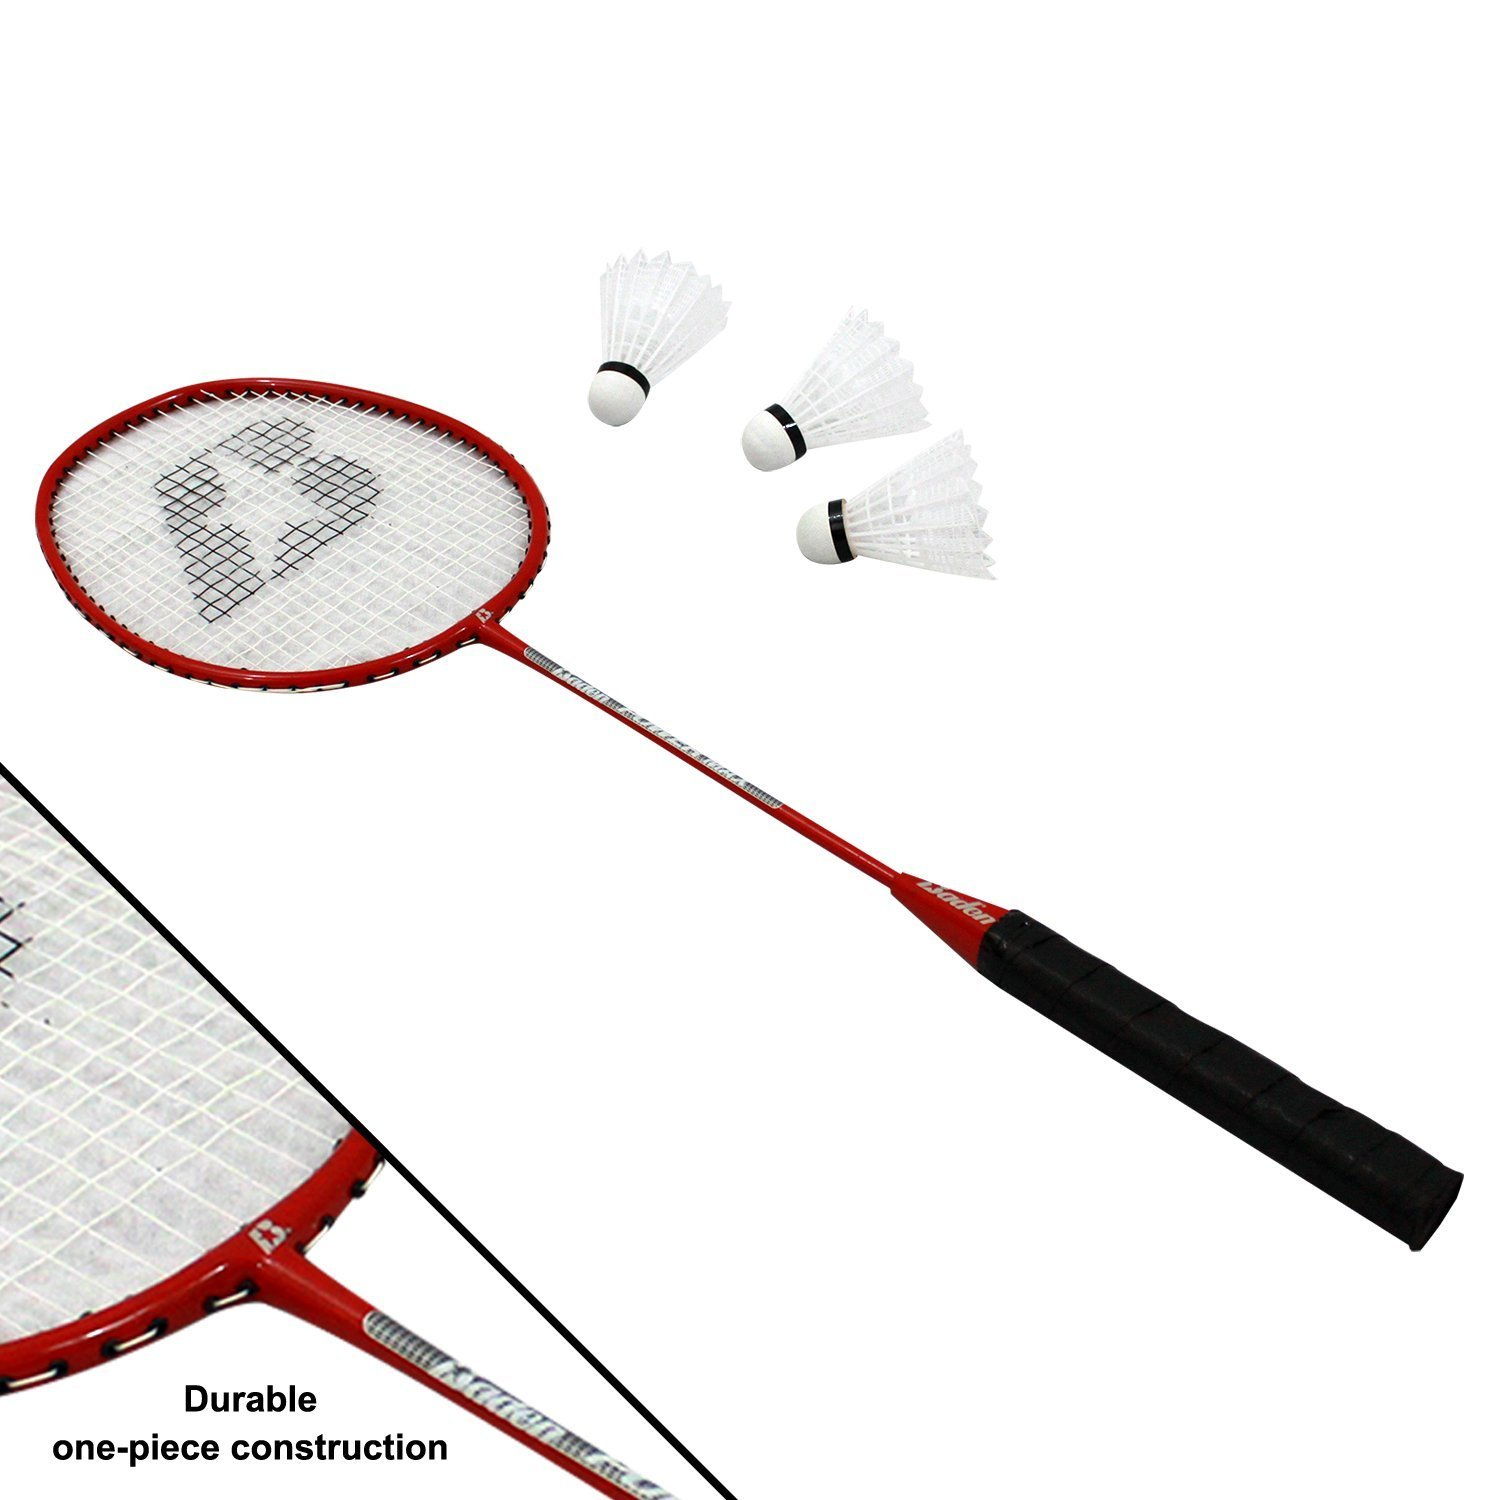 Bundle Includes 3 Items - Baden Champions Volleyball Badminton Set, Flickin' Chicken and Champion Sports Wooden Ring Toss Game by Baden, Champion Sports & Haywire Group (Image #5)